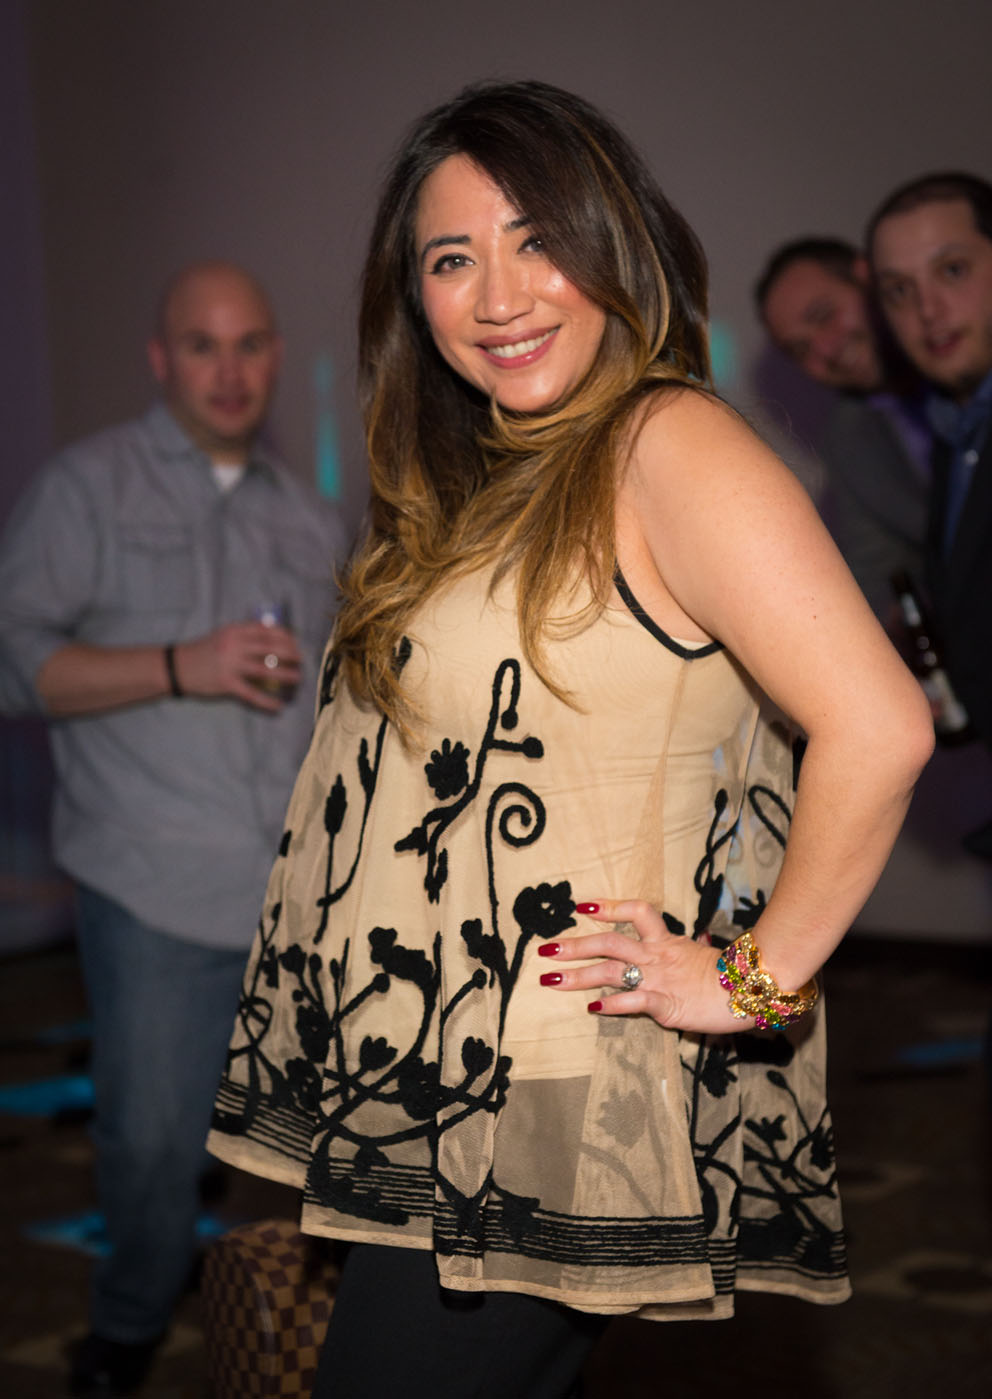 2015-12-09 ReMax Corpoarte Event - The Borgata - Atlantic City NJ - Photo Sesh - 2015-5180.jpg